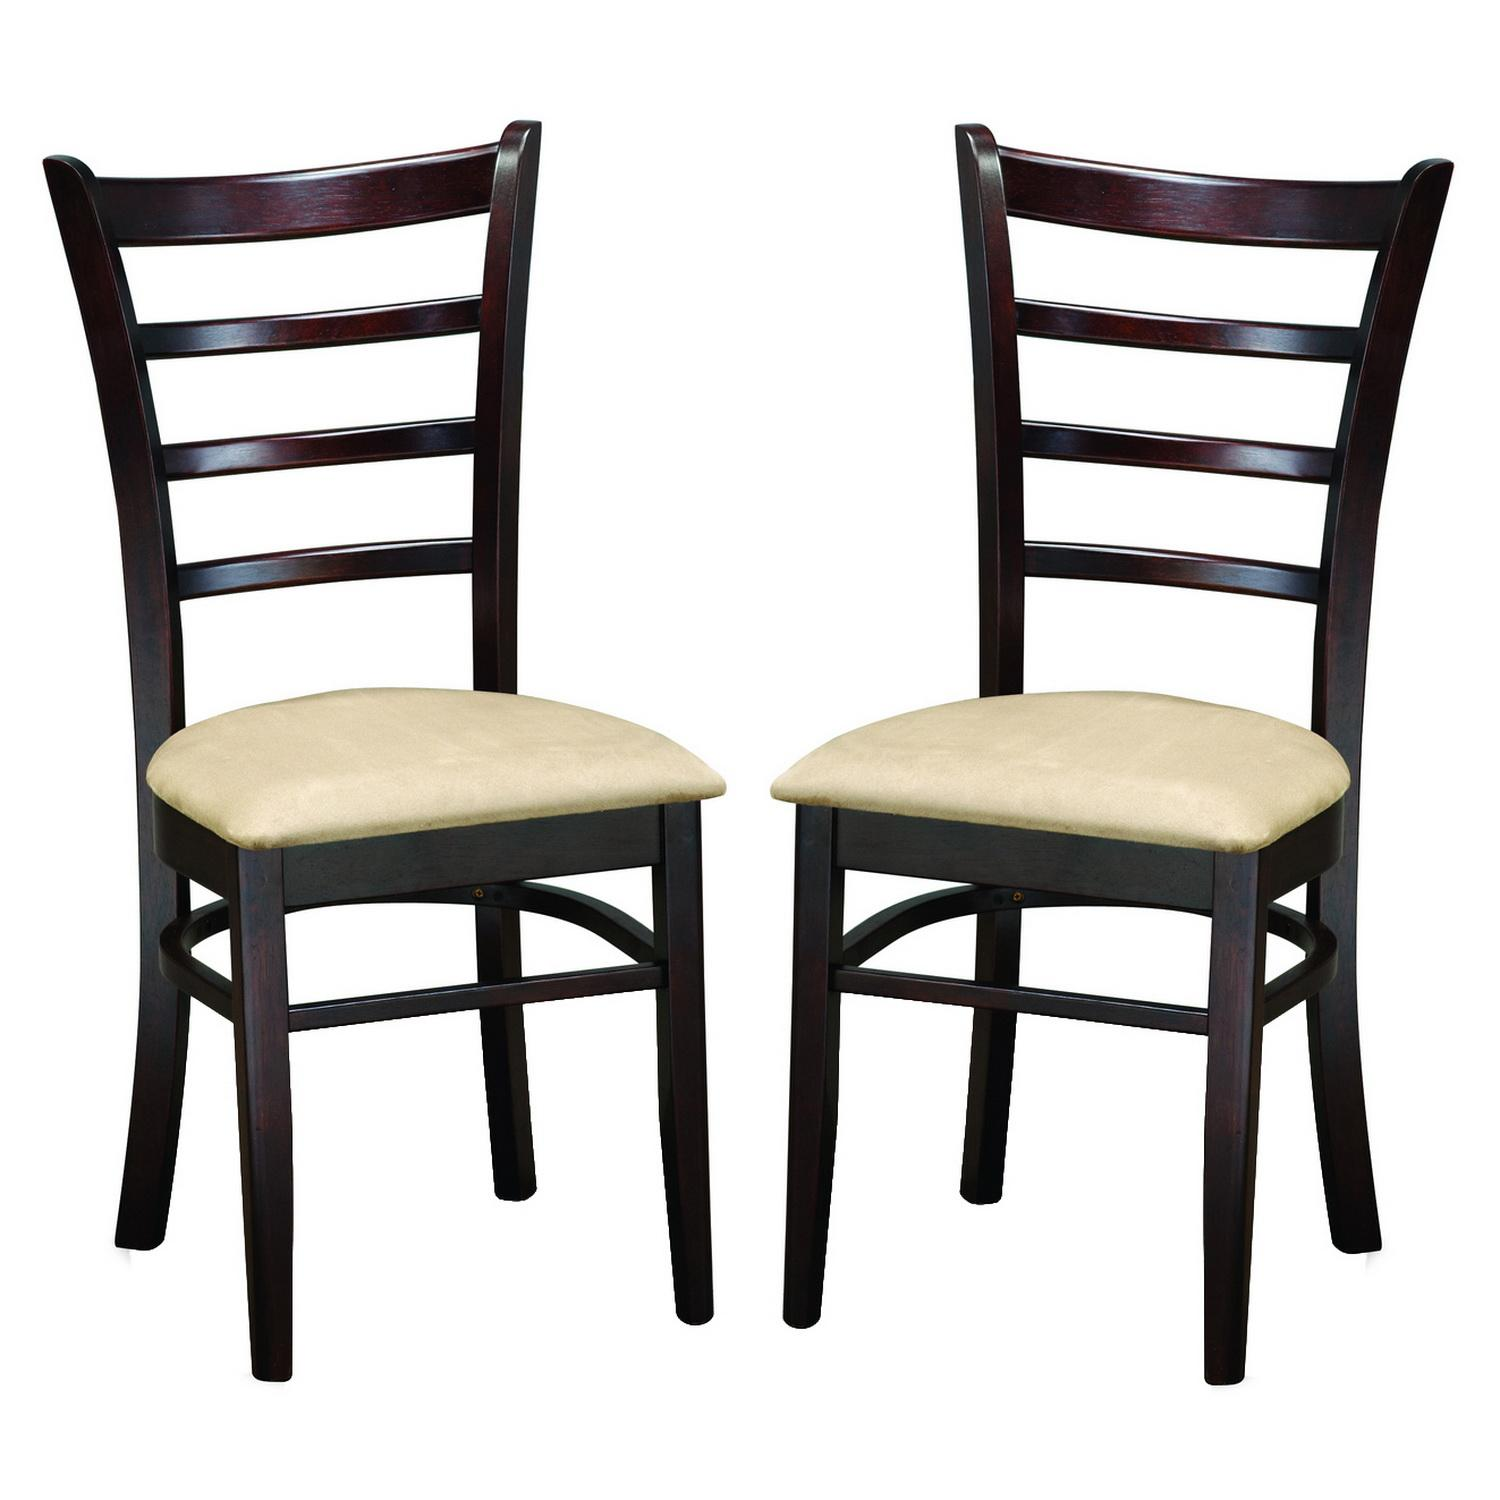 Chairs For The Kitchen: Keitaro Dark Brown Modern Dining Chairs (Set Of 2)